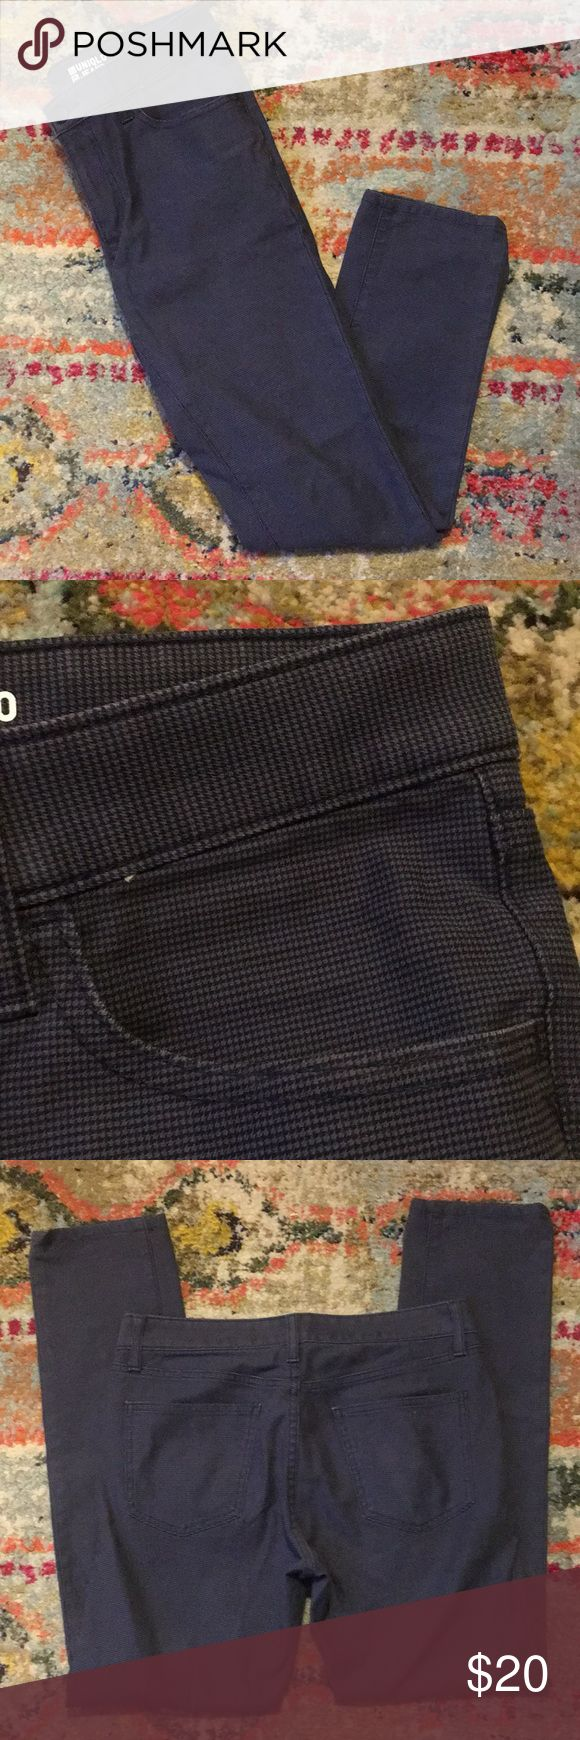 """Uniqlo jeans Great condition men's Uniqlo jeans (small checkered pattern in navy and blue) in a skinny fit, waist 31"""" Uniqlo Jeans"""